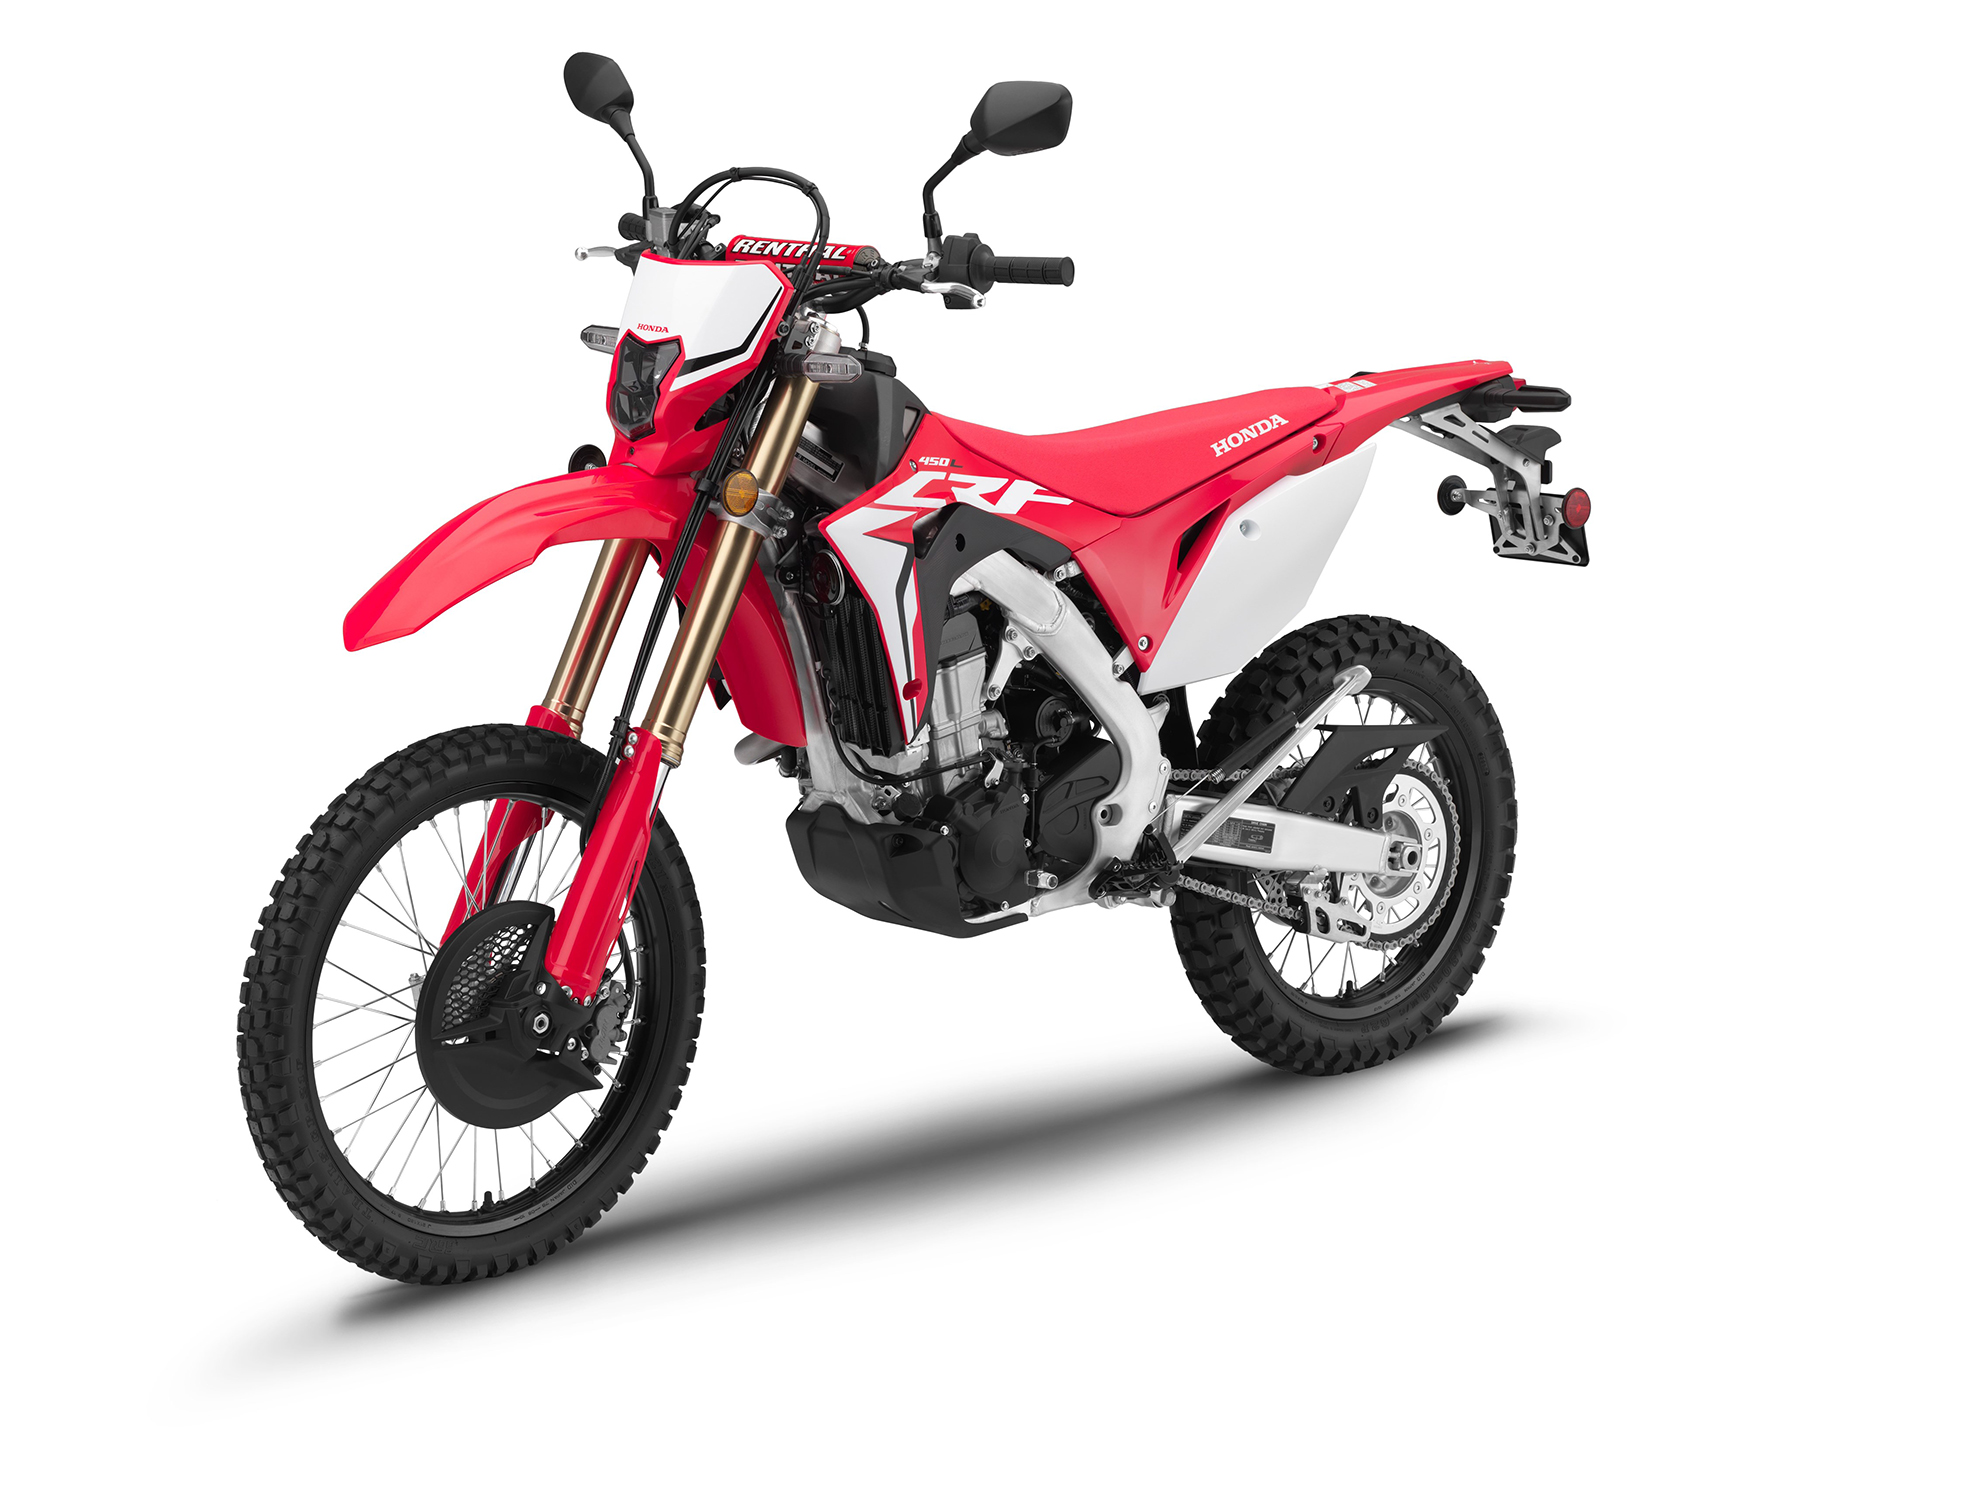 New Honda Motorcycles 2018 >> Honda CRF450R 2019 Motorcycle